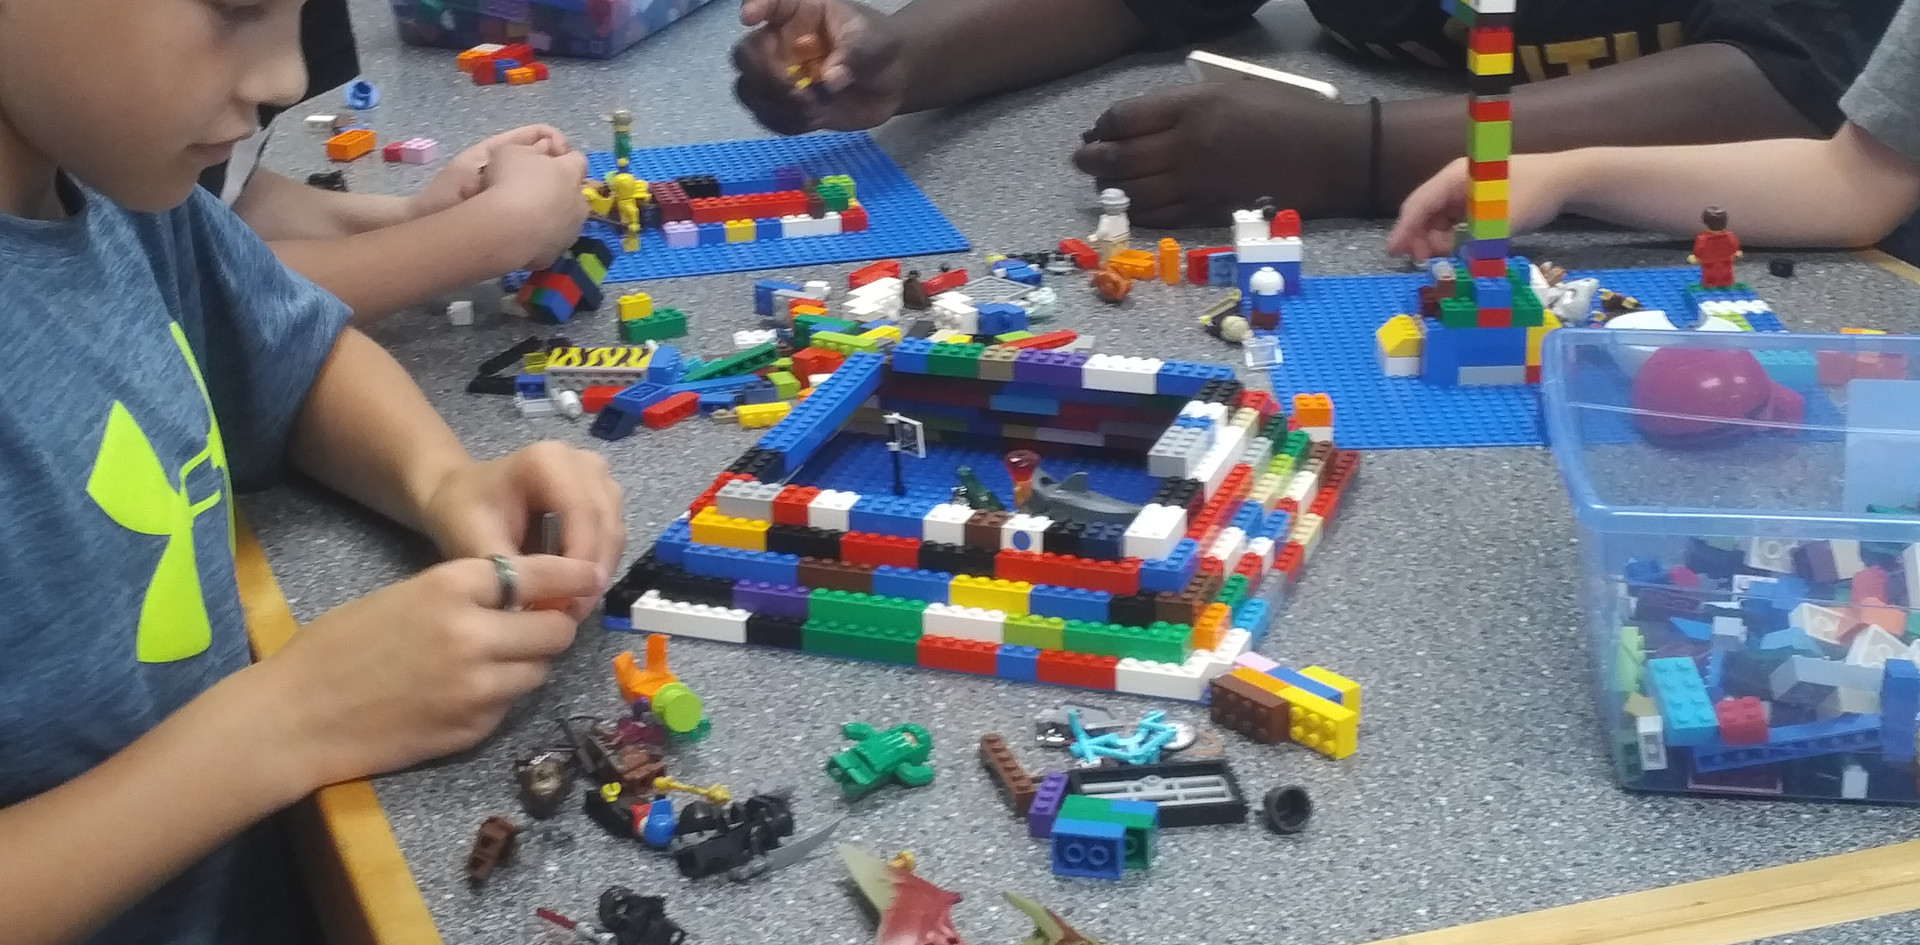 Building pyramids and towers